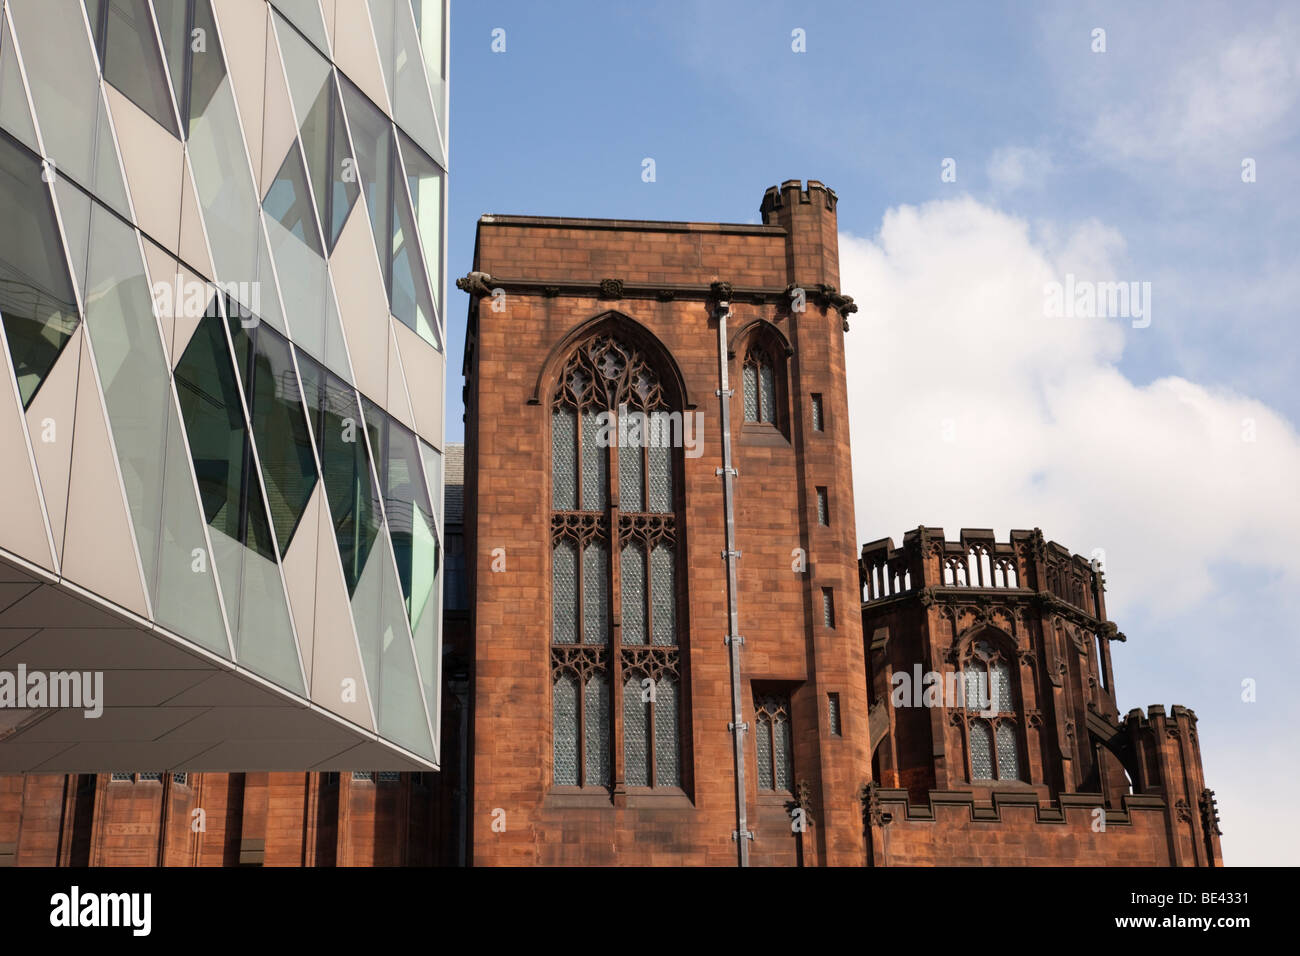 Modern glass building by John Ryland's Library in old building near the city centre. Deansgate, Manchester, - Stock Image